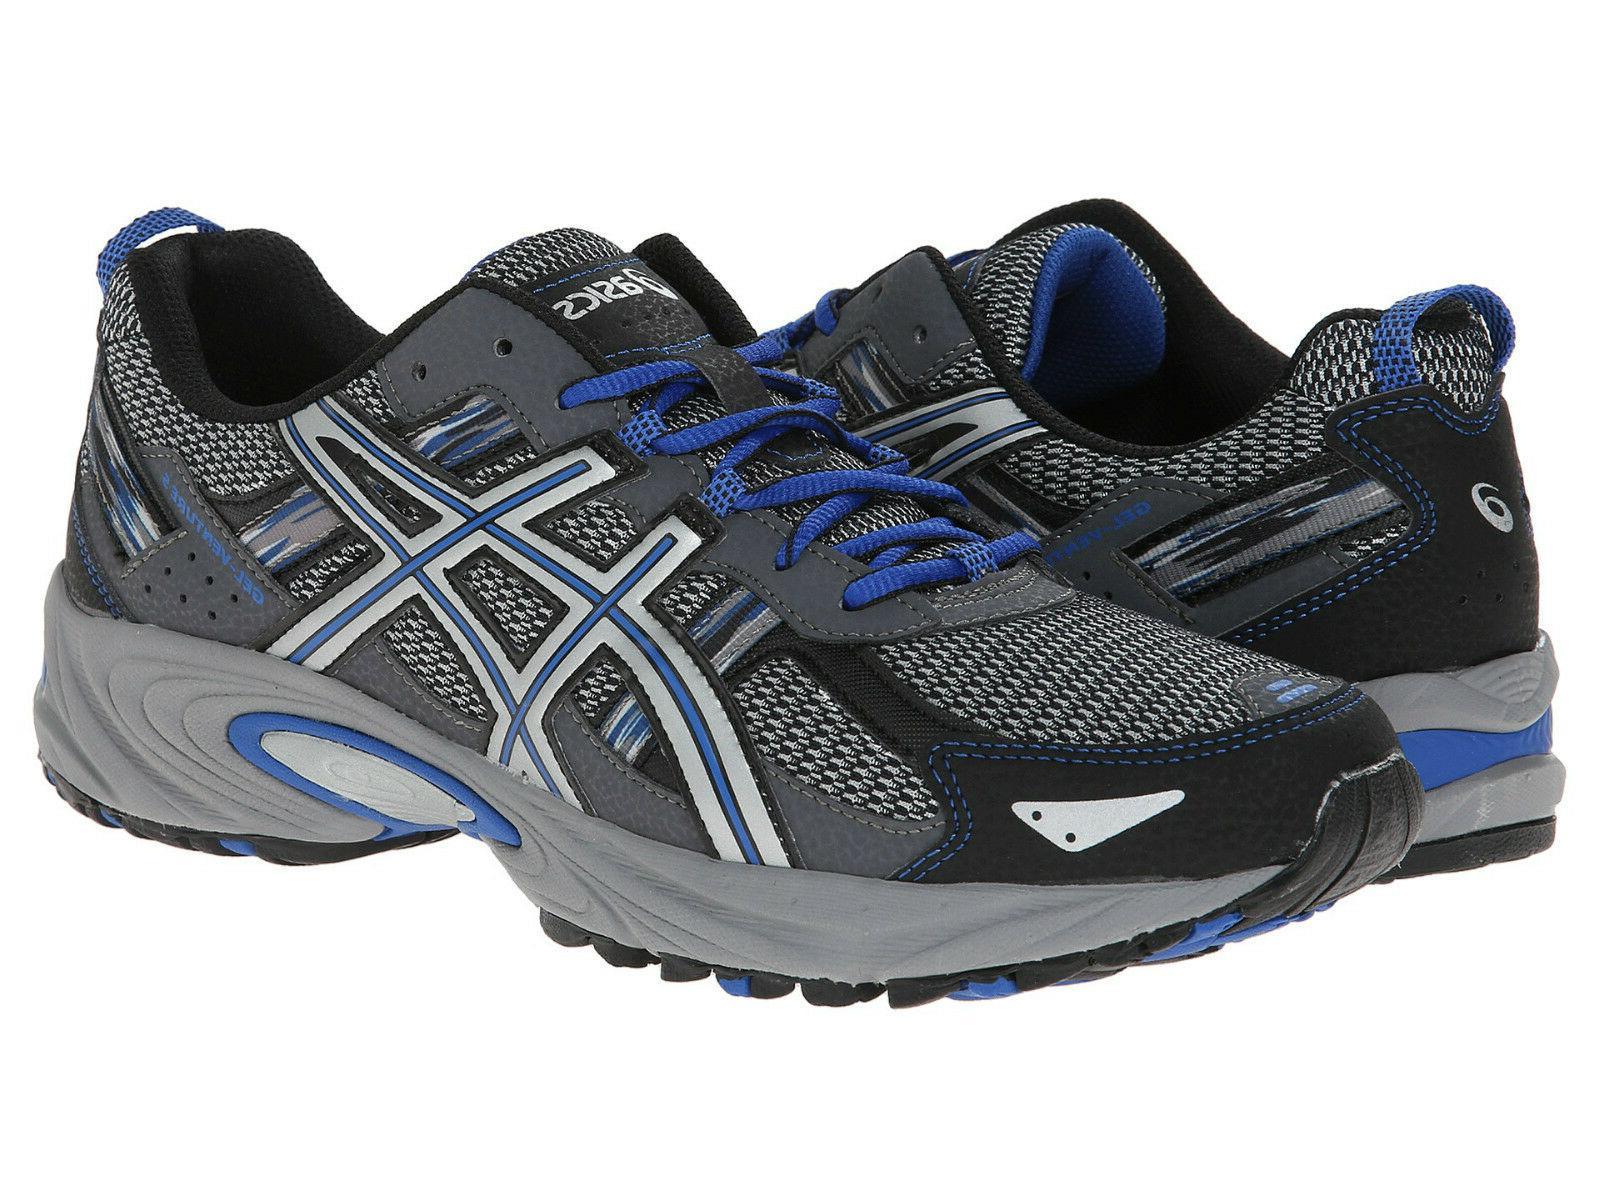 Flash Sale! NIB Men Asics Gel Venture 5 Trail Running Shoes